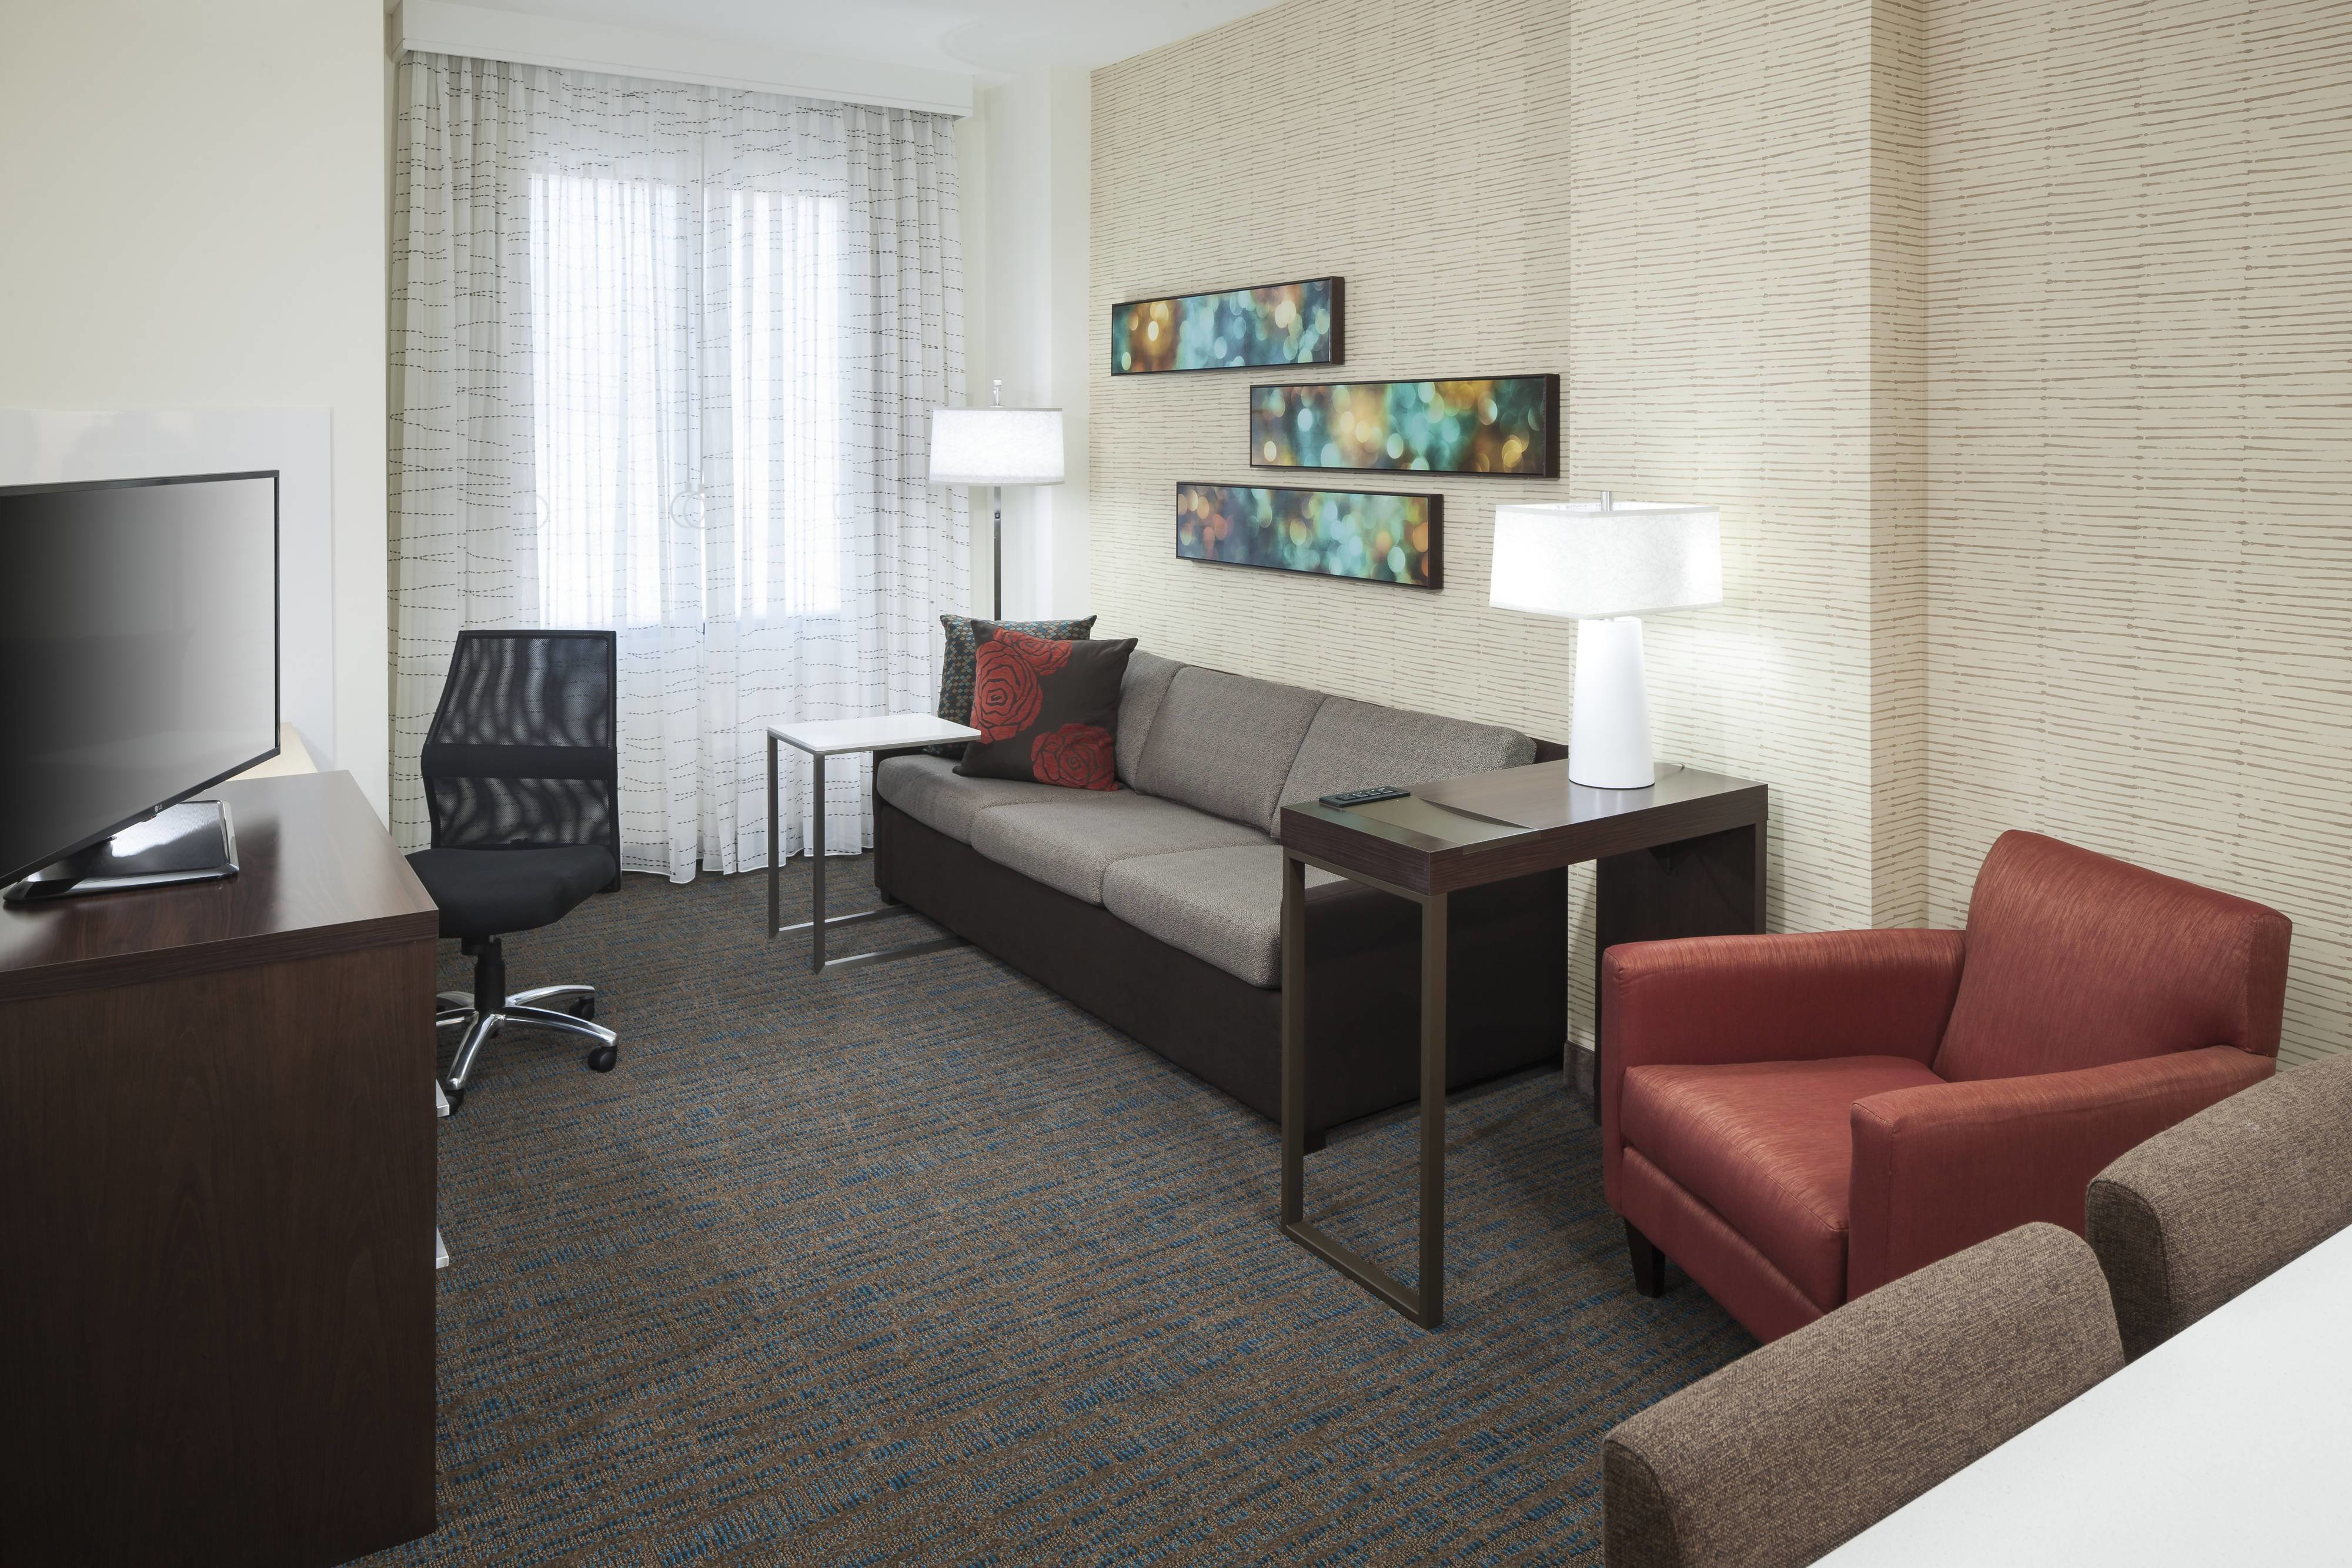 Best Clearwater Beach Hotel Suites With 2 Bedrooms Residence With Pictures